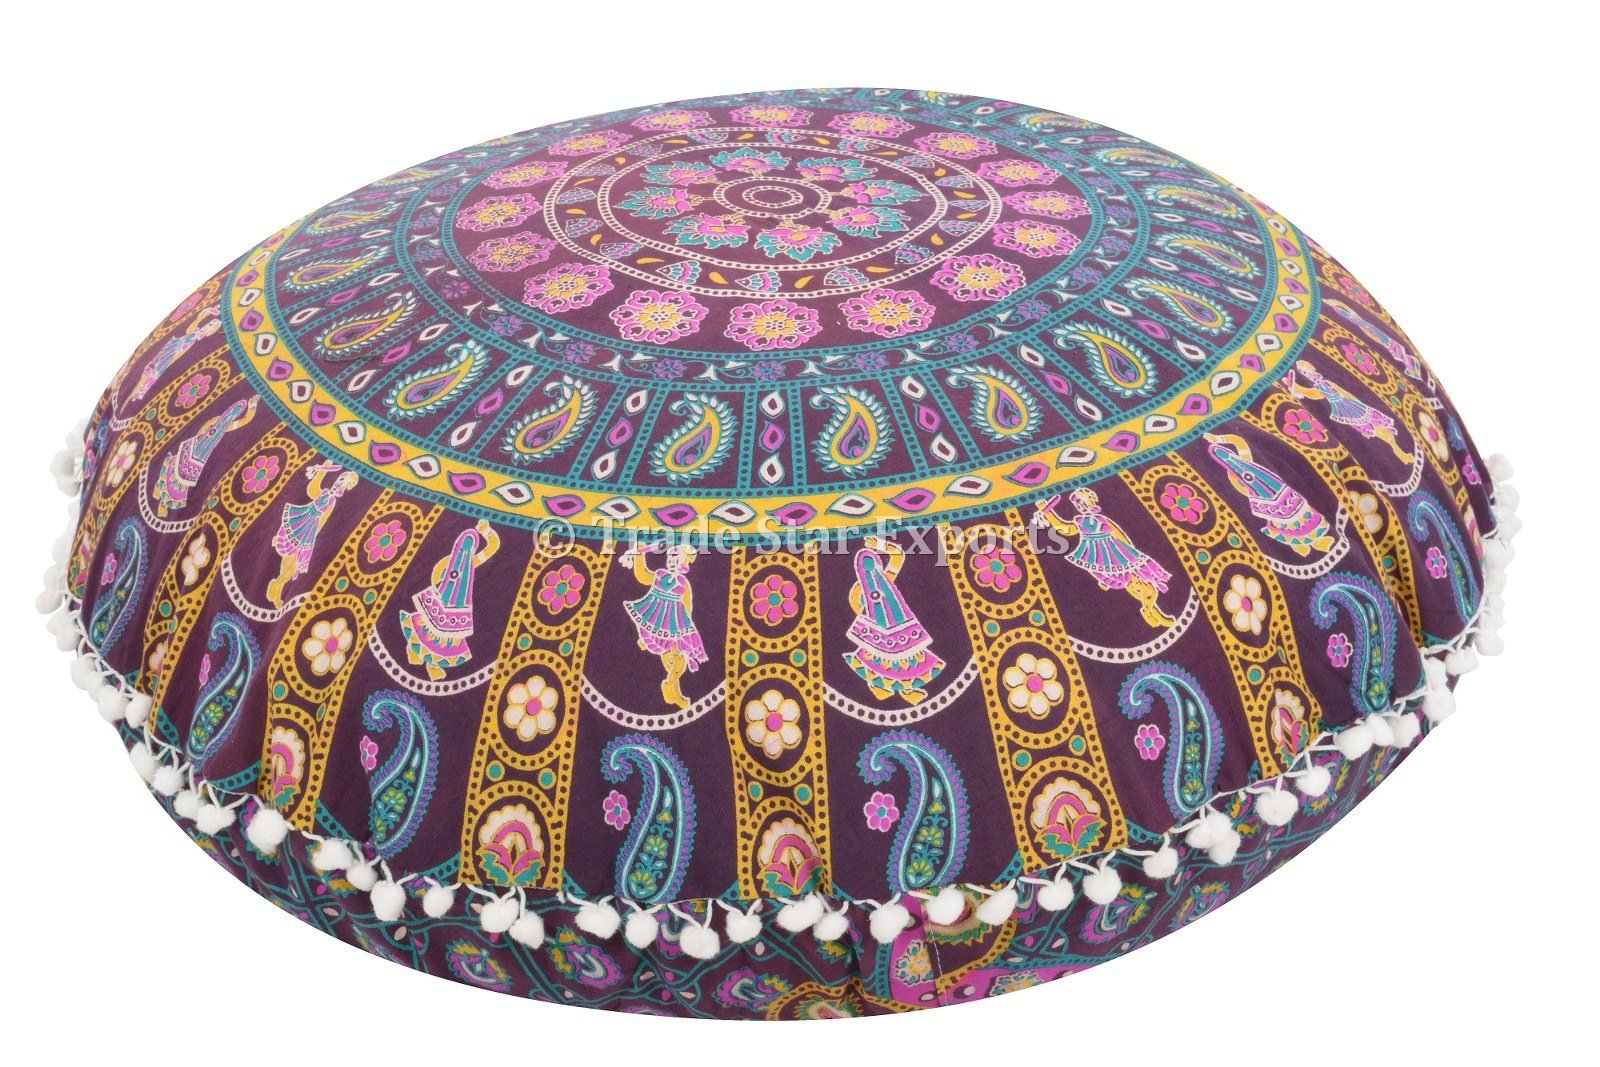 Large 32'' Round Pillow Cover, Decorative Mandala Pillow Sham, Indian Bohemian Ottoman Poufs, Pom Pom Pillow Cases, Outdoor Cushion Cover (Pattern 2)